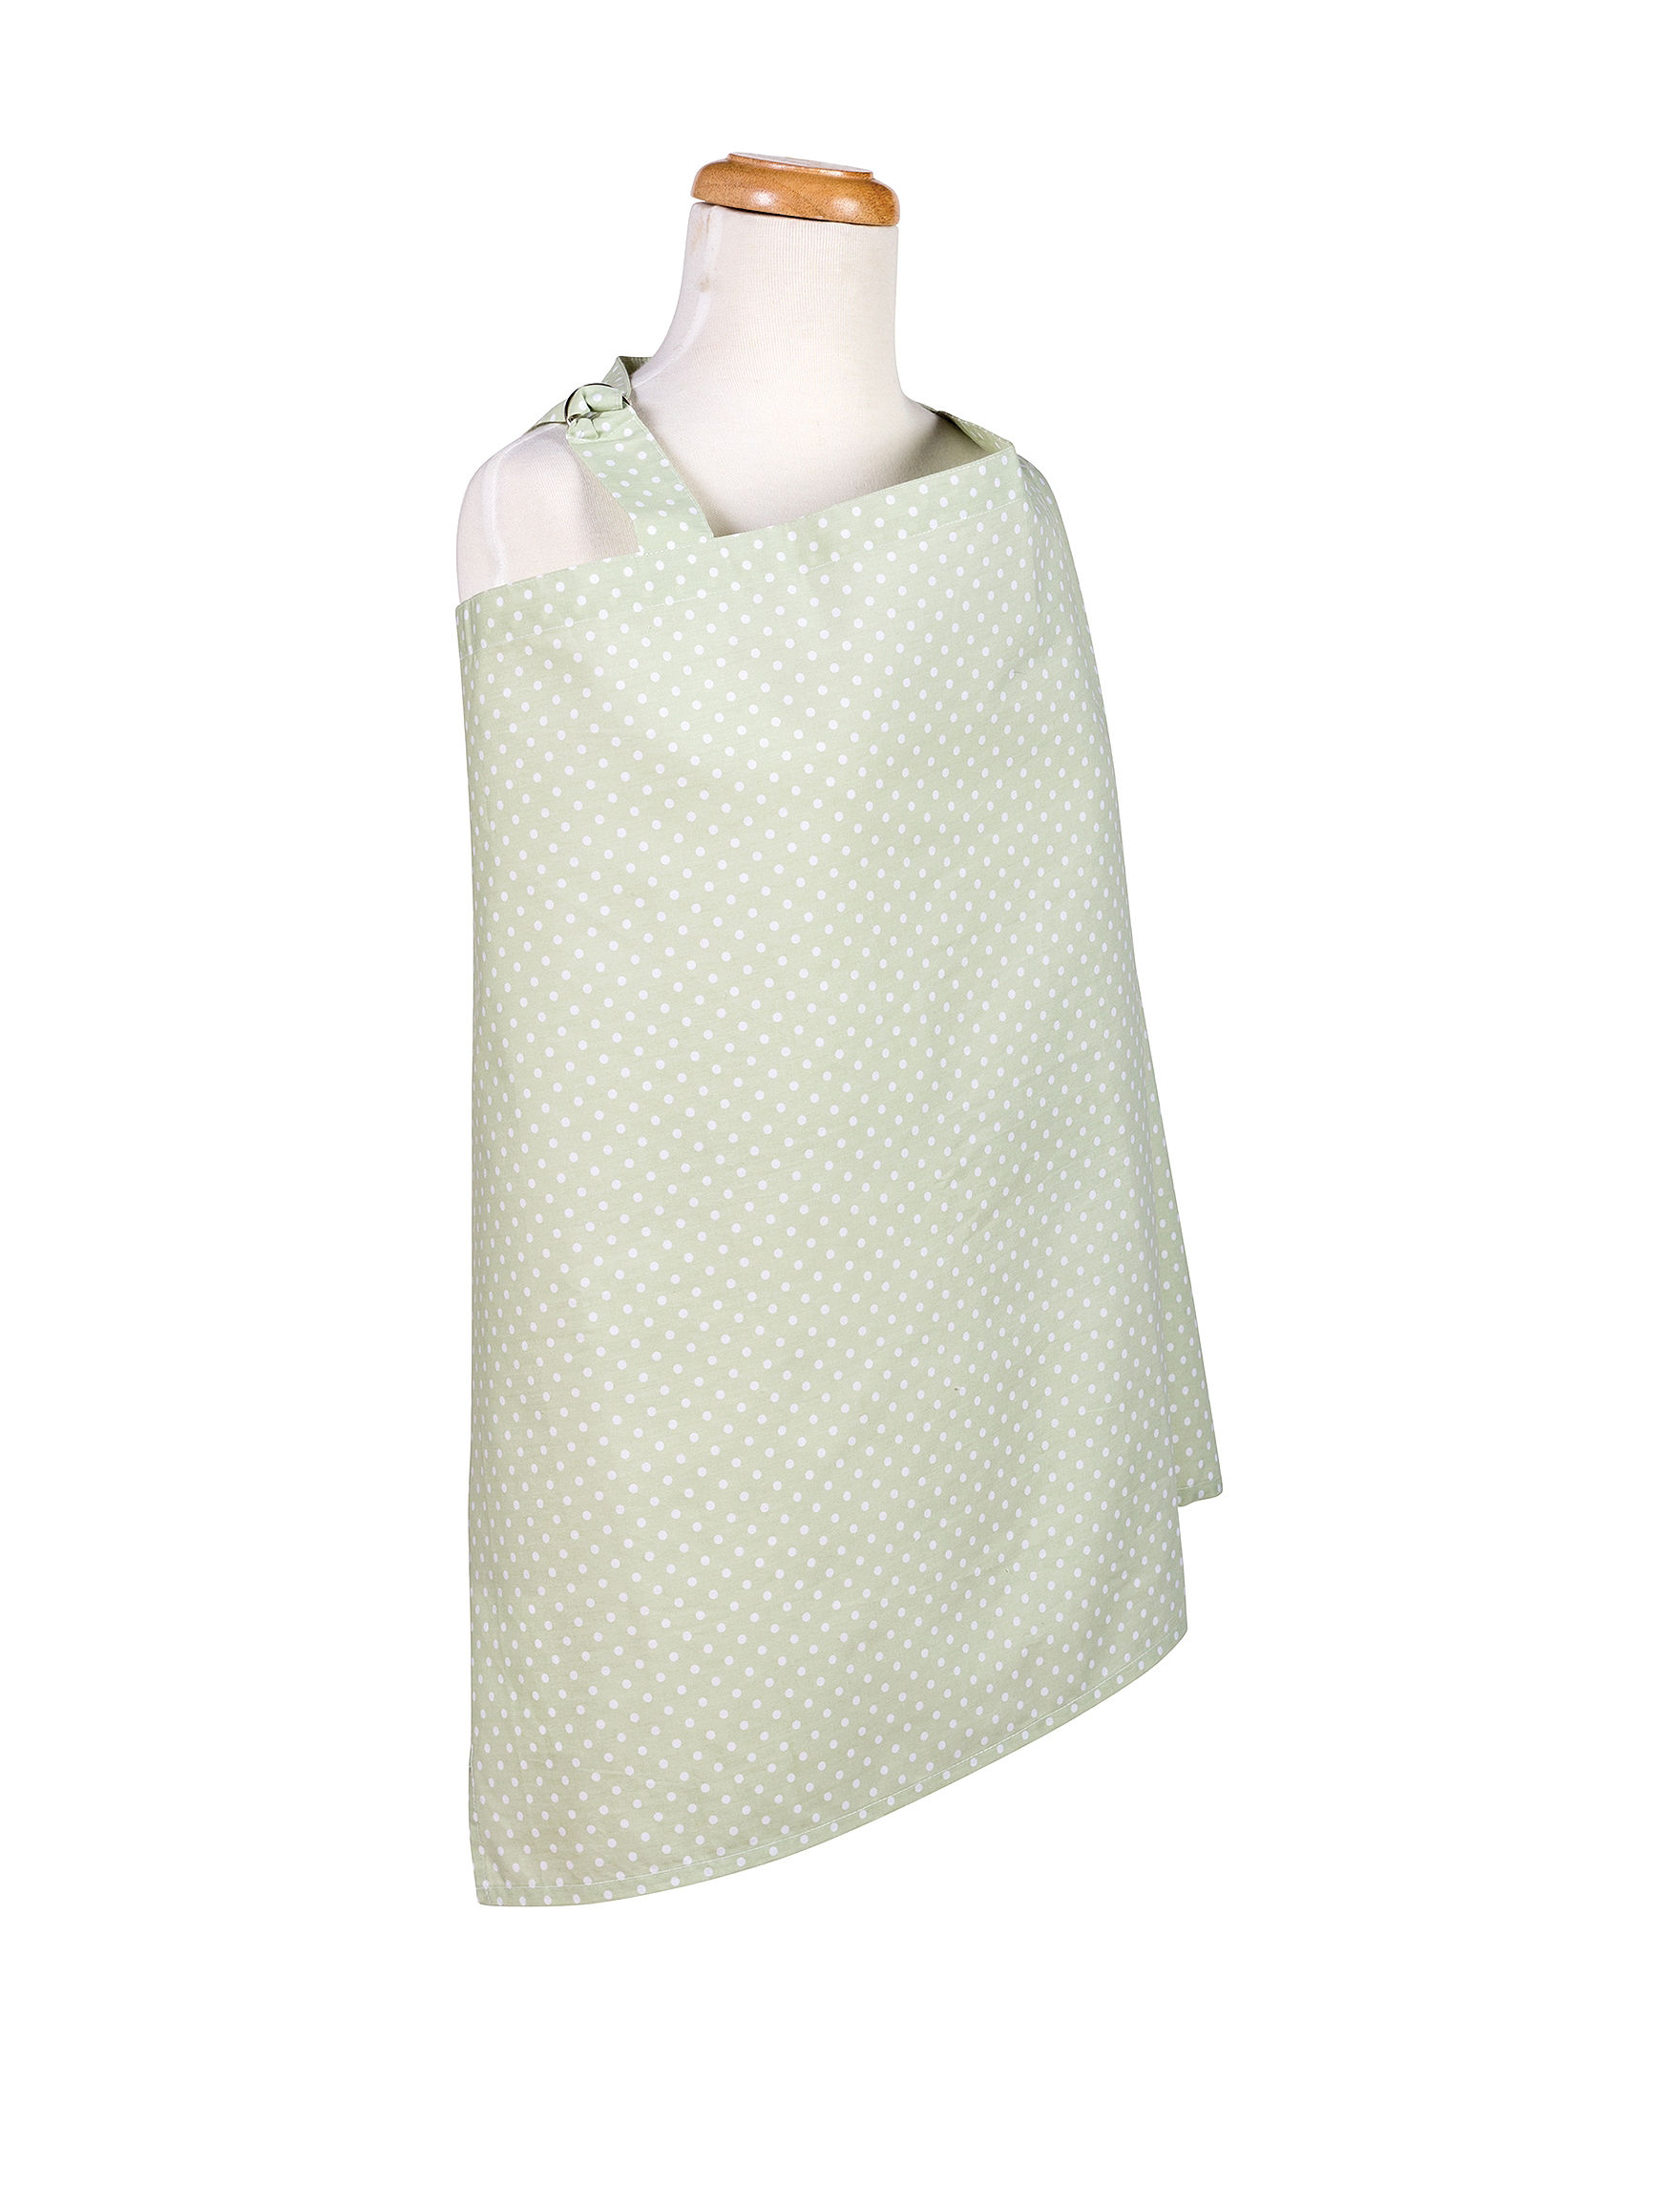 Trend Lab Green / White Bibs & Burp Cloths Breastfeeding